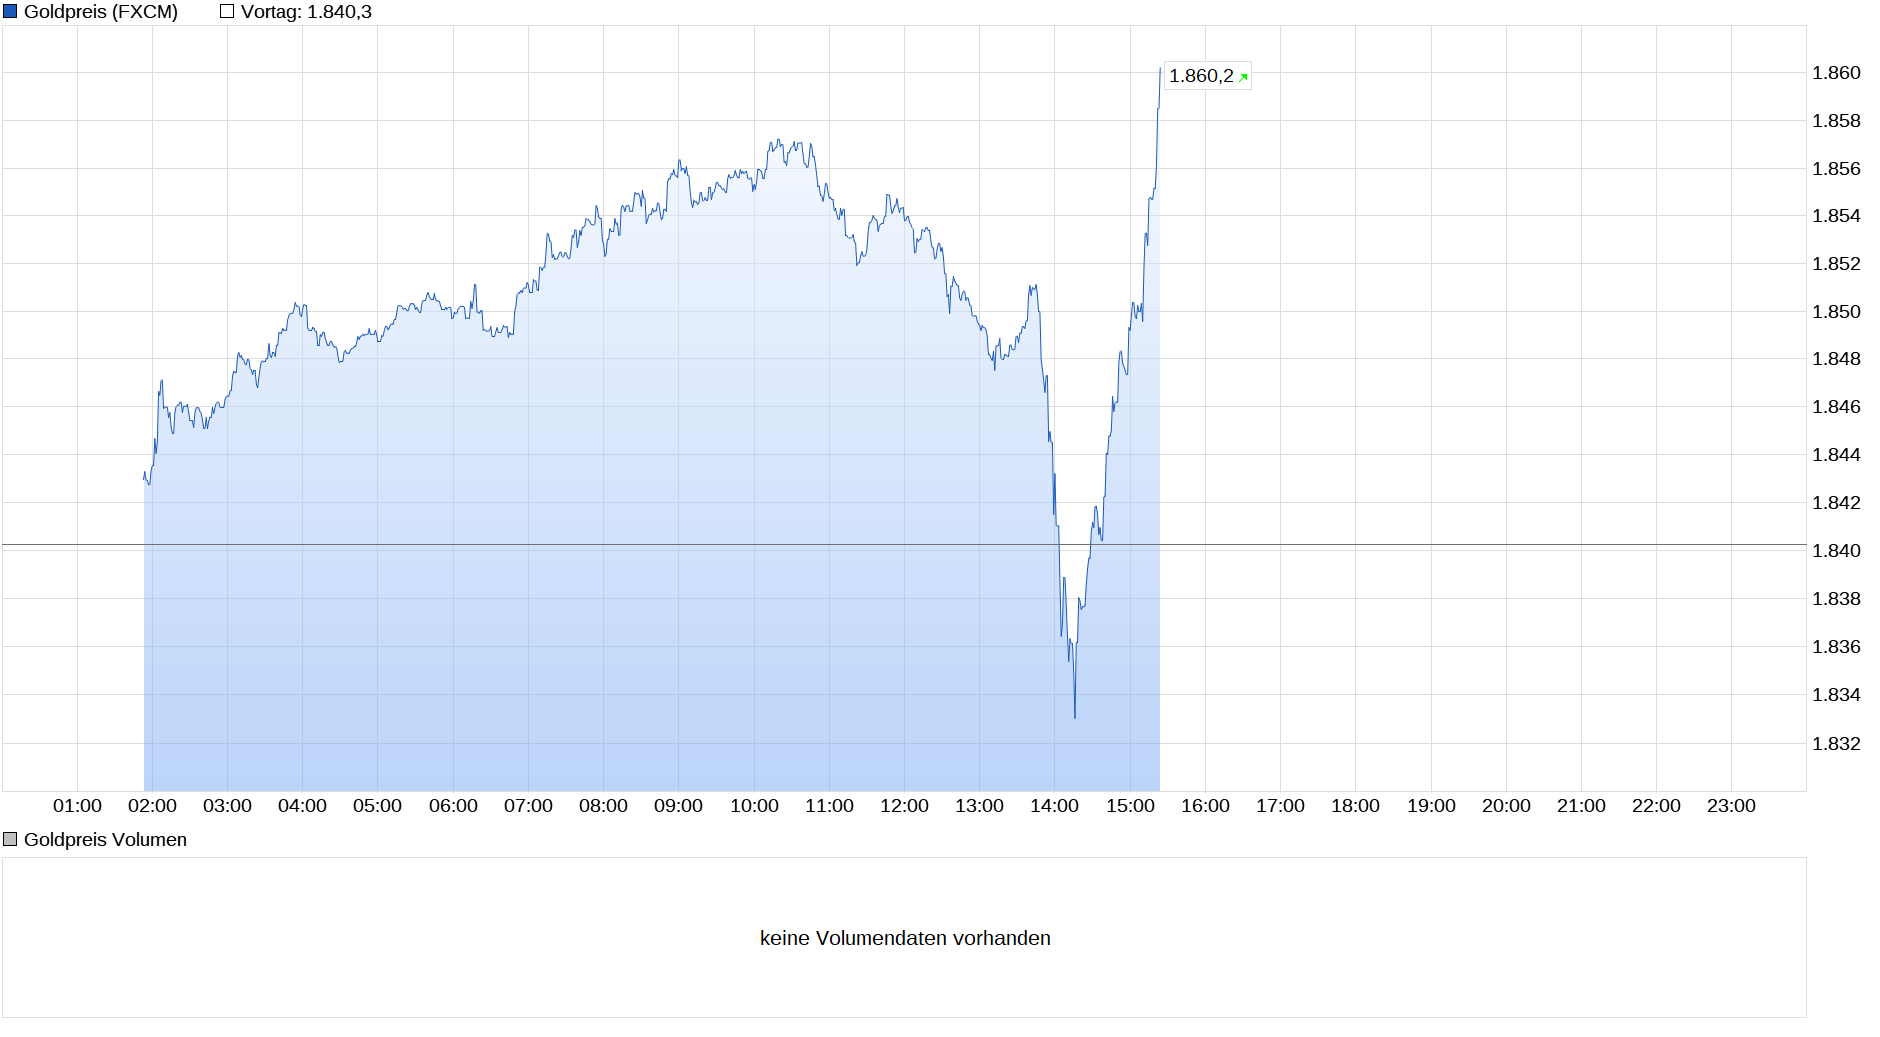 chart_intraday_goldpreis.png